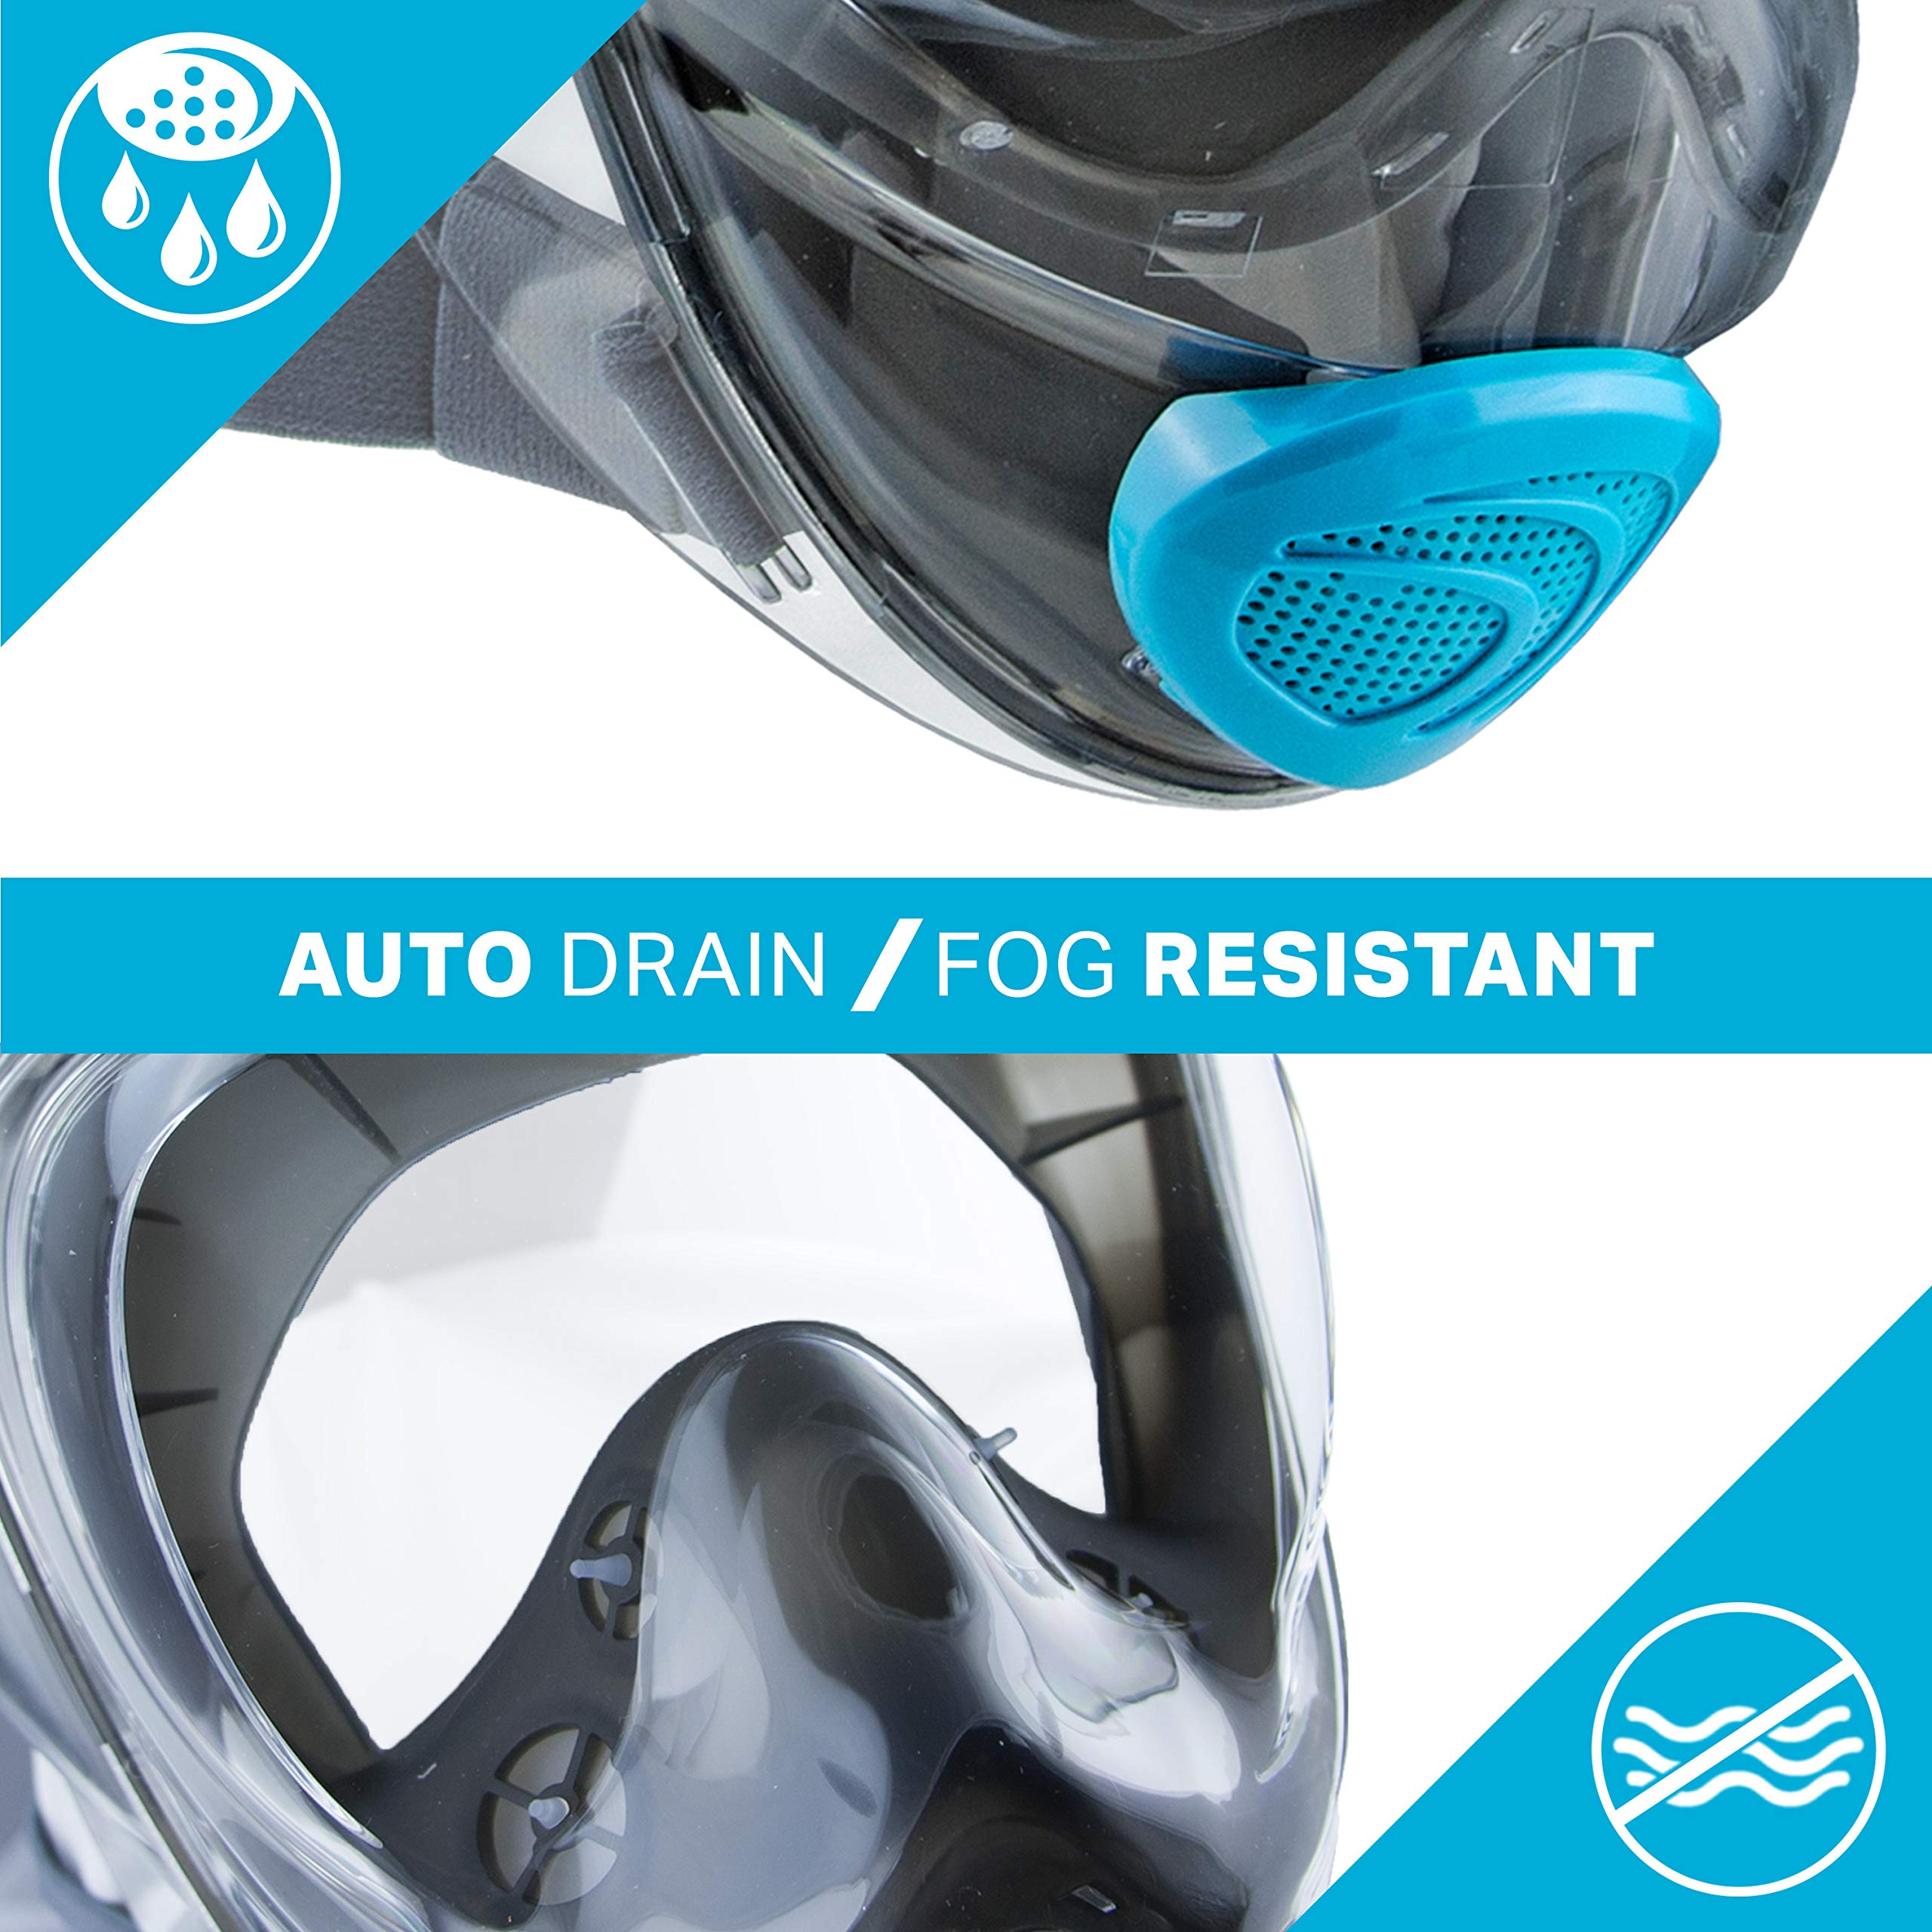 WildHorn Outfitters Seaview 180° V2 Full Face Snorkel Mask with FLOWTECH Advanced Breathing System - Allows for A Natural & Safe Snorkeling Experience- Panoramic Side Snorkel Set Design by WildHorn Outfitters (Image #7)